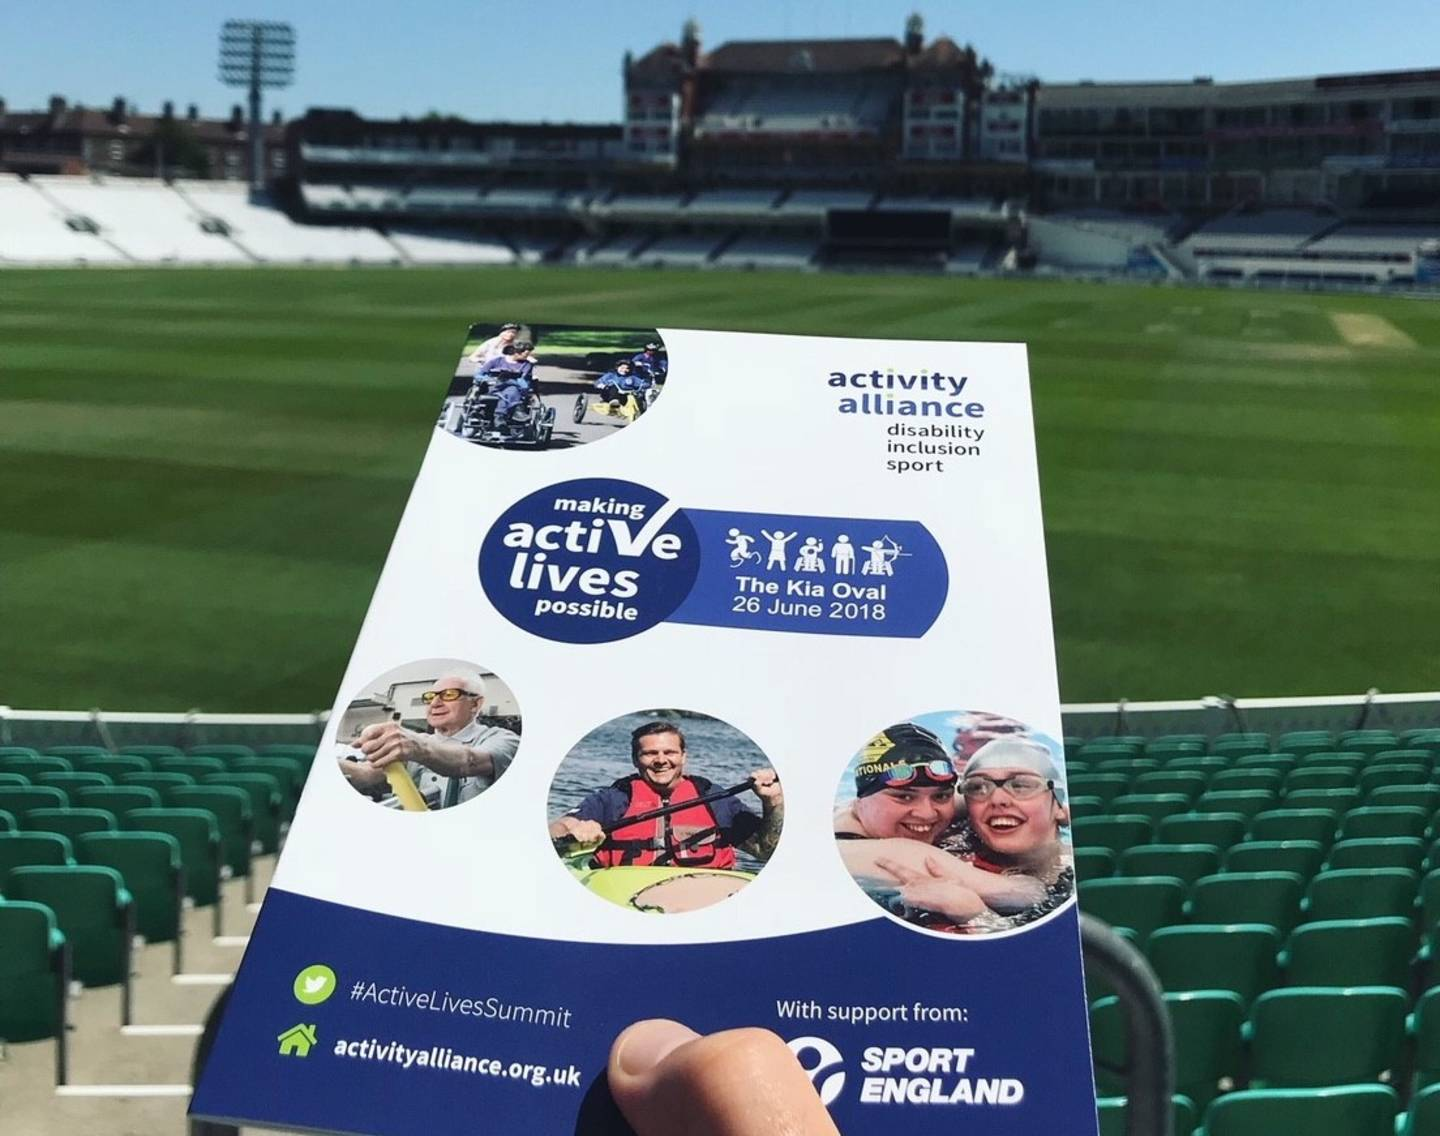 Making Active Lives Possible Summit at The Kia Oval